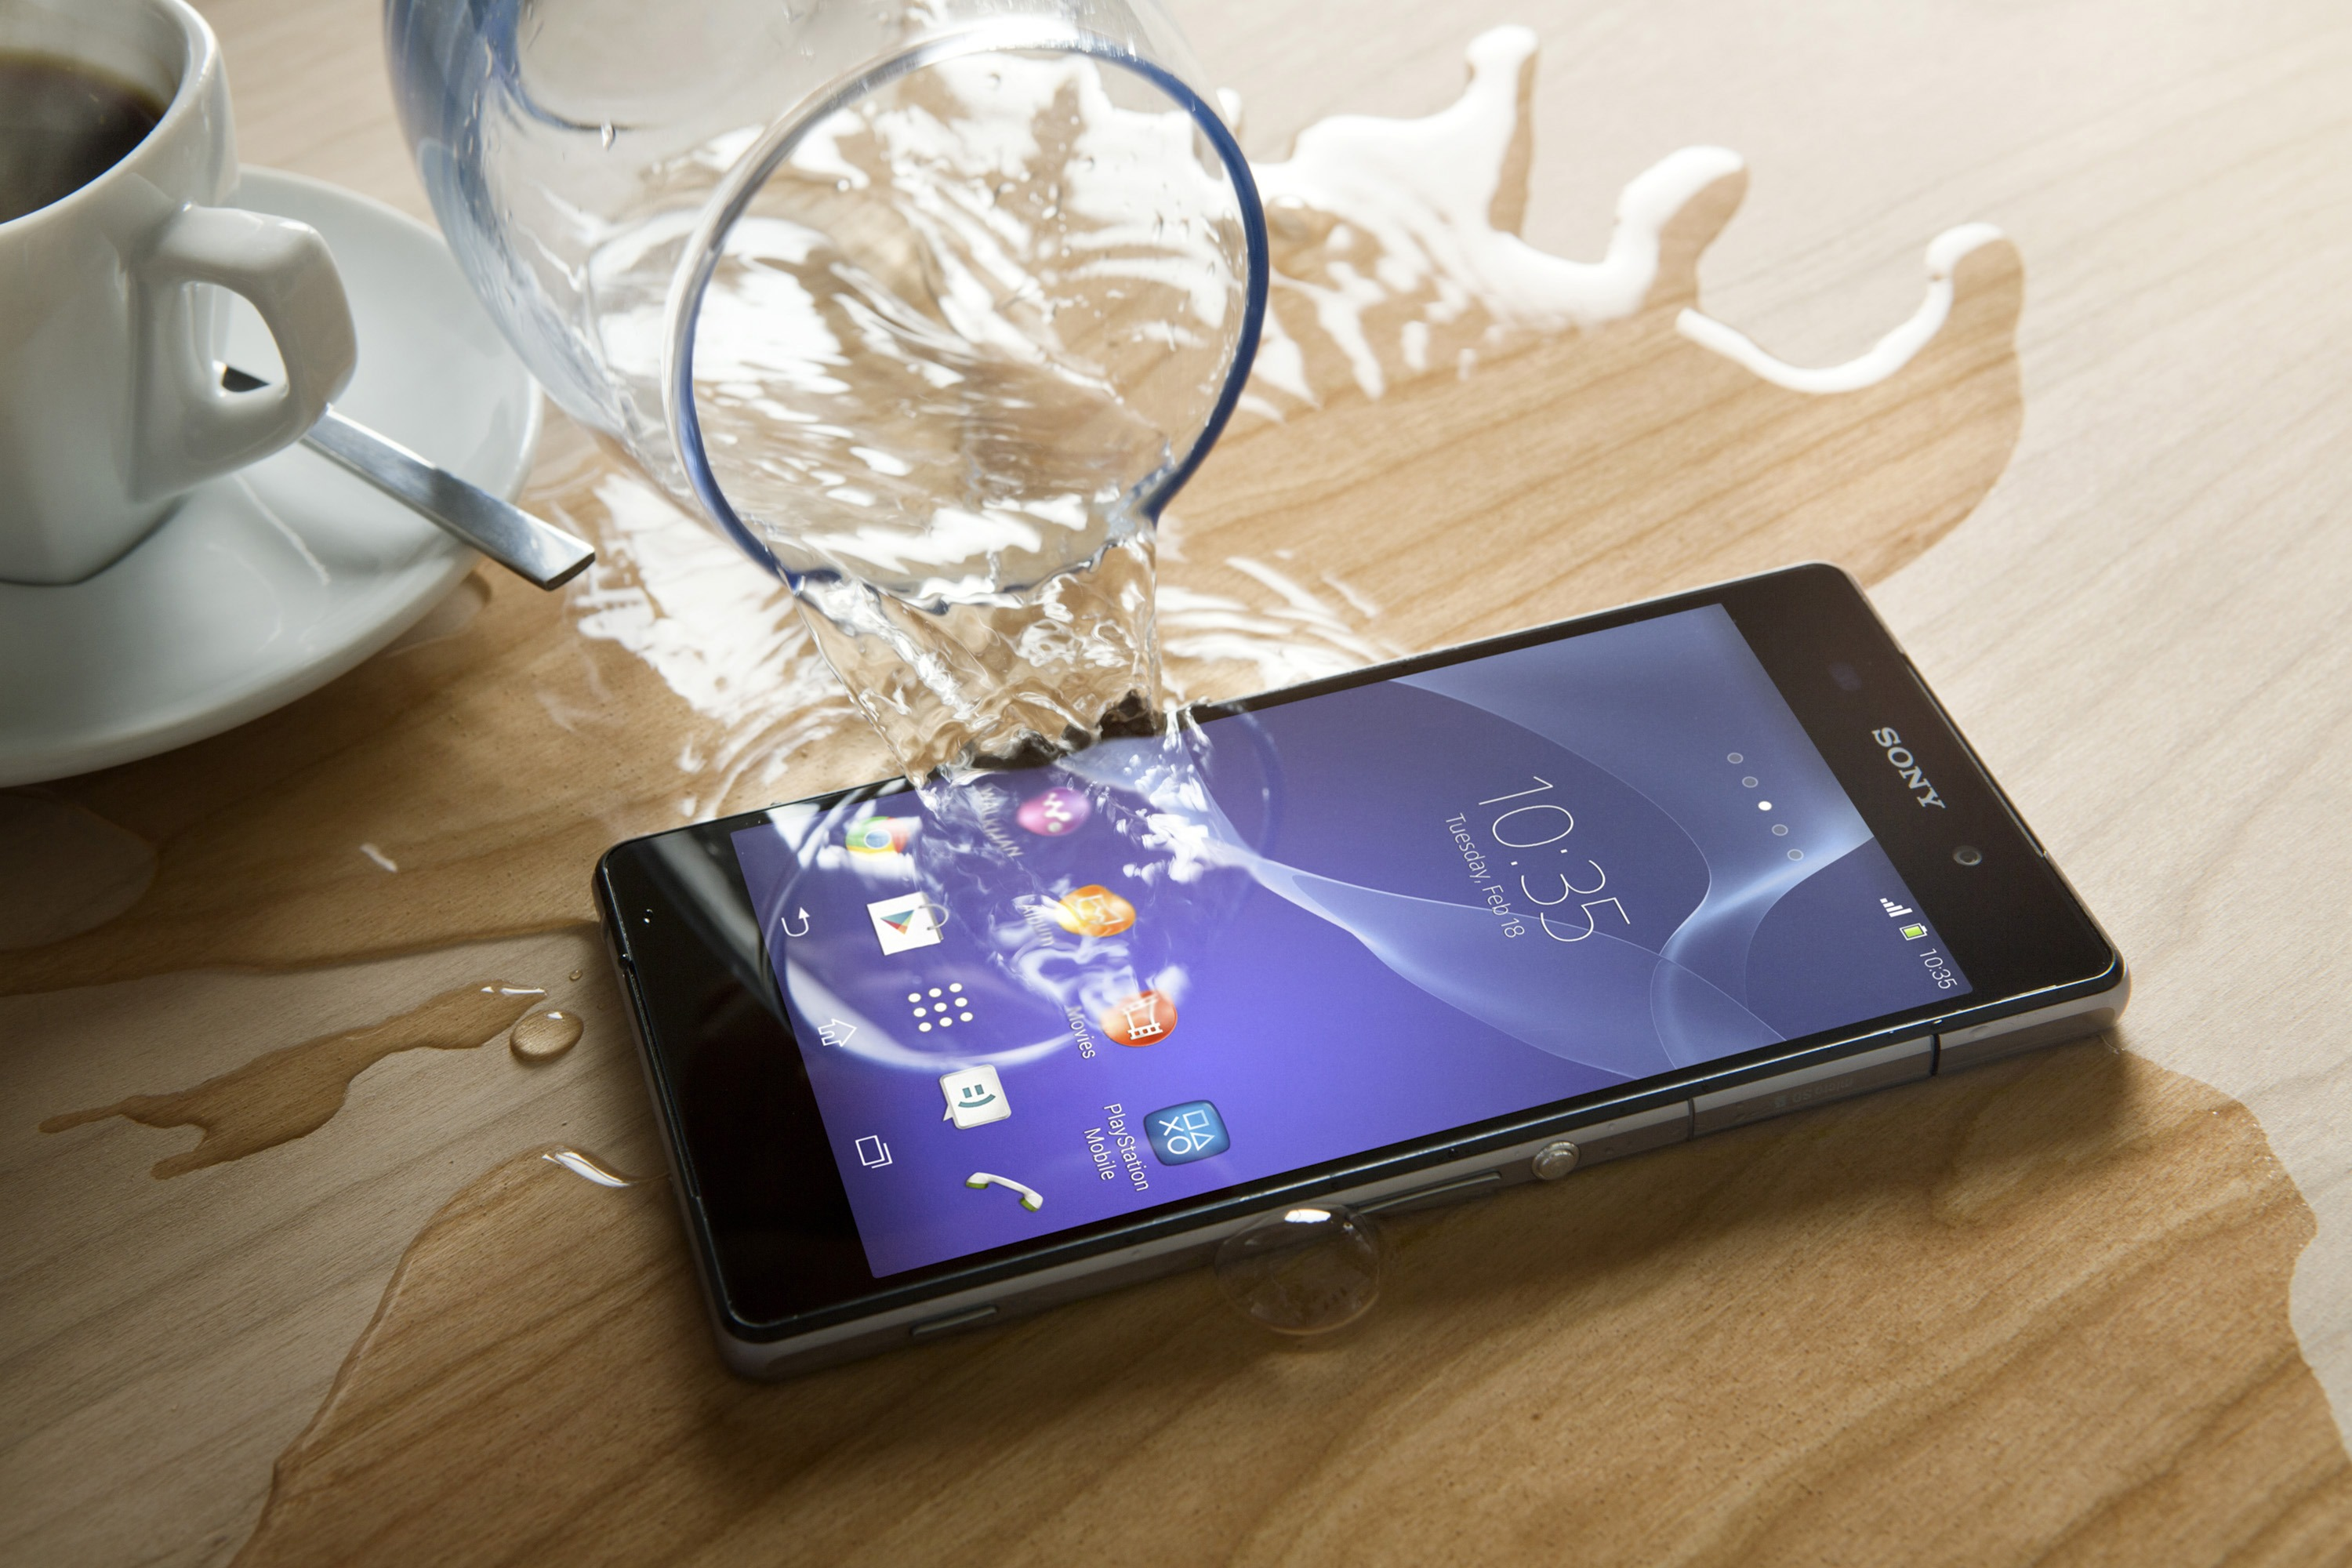 Sony to pay Xperia owners, loses class action lawsuit over waterproof claims